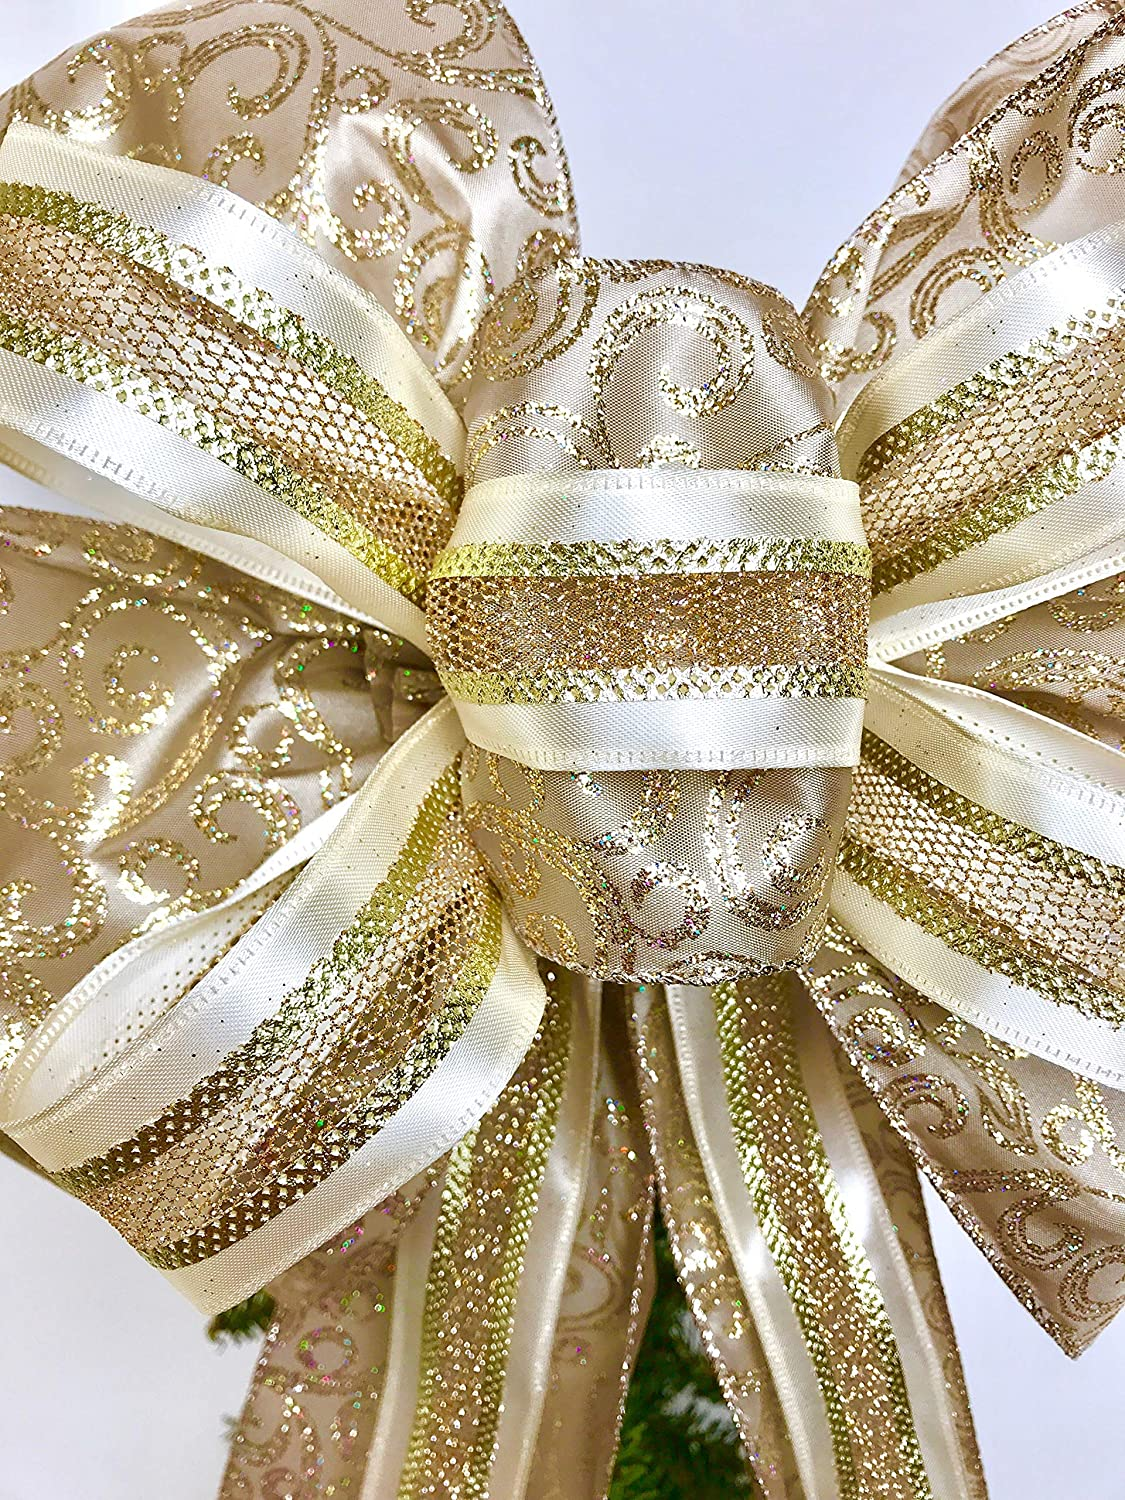 Wreath Bow, Gold Taupe Shimmer Wreath Bows, Tree Topper, Large Gift Bow, Wreath Bows, Holiday Bow, Home Decor, Christmas Bows, Swag Bow,- Handmade Bow